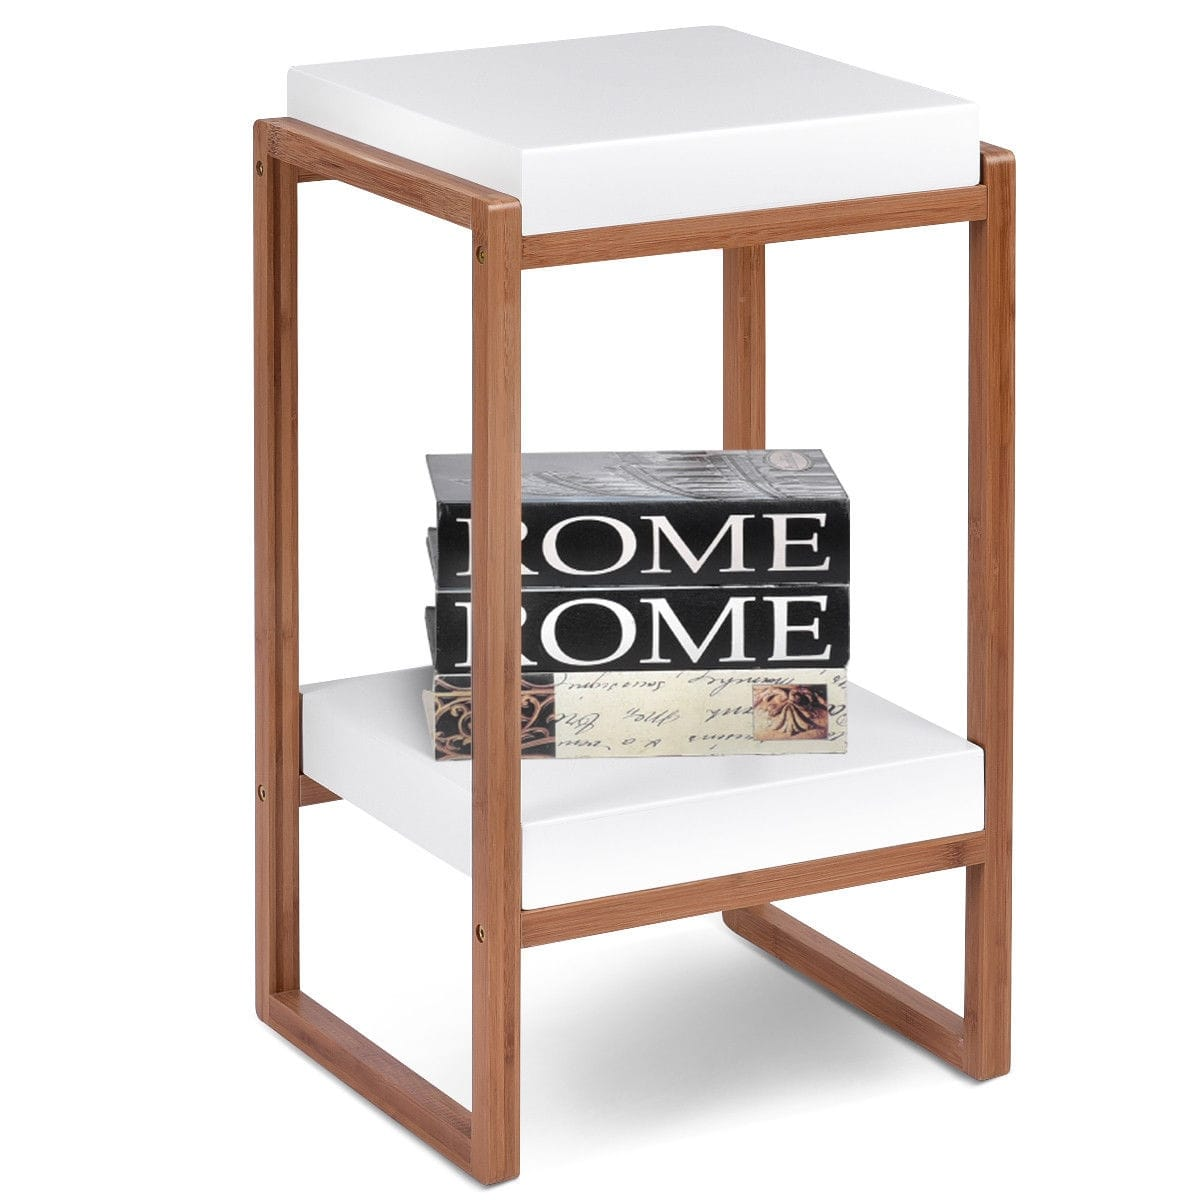 gymax side end table accent storage night stand display shelf white with drawer and free shipping orders over tool retro furniture designers rose gold placemats ikea kitchen boxes